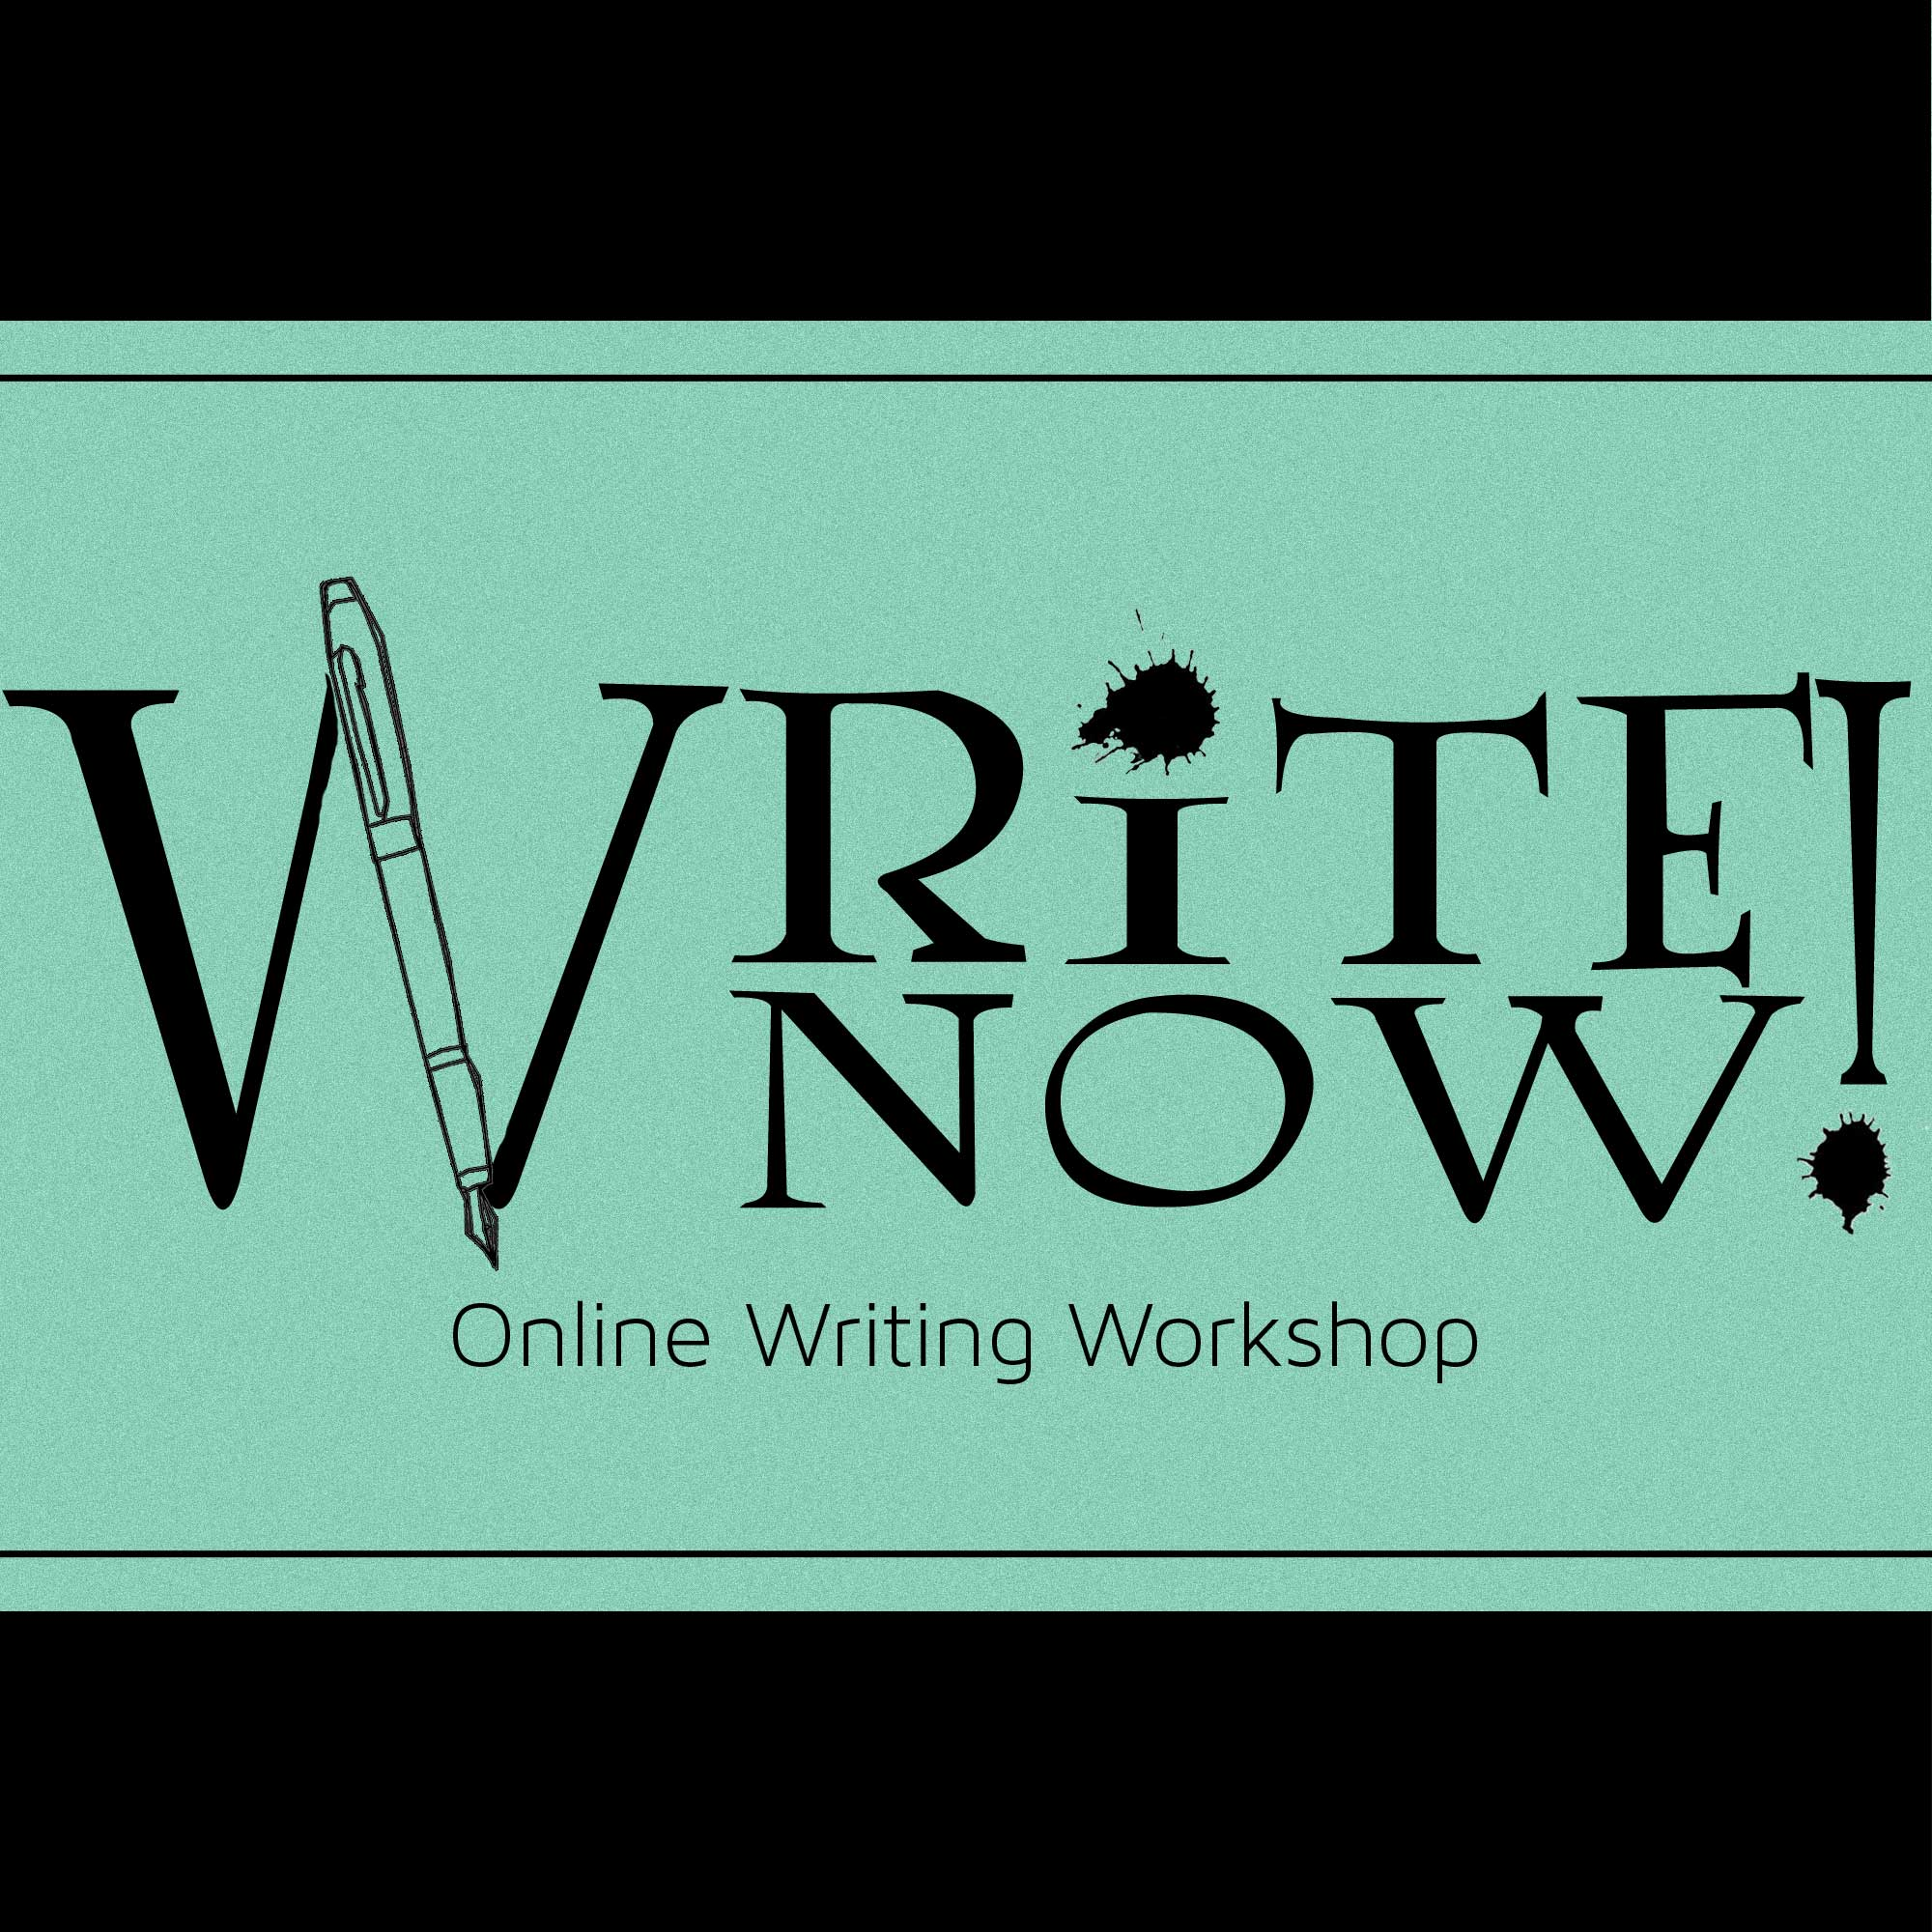 Write Now online writing workshop; injoyinc.com